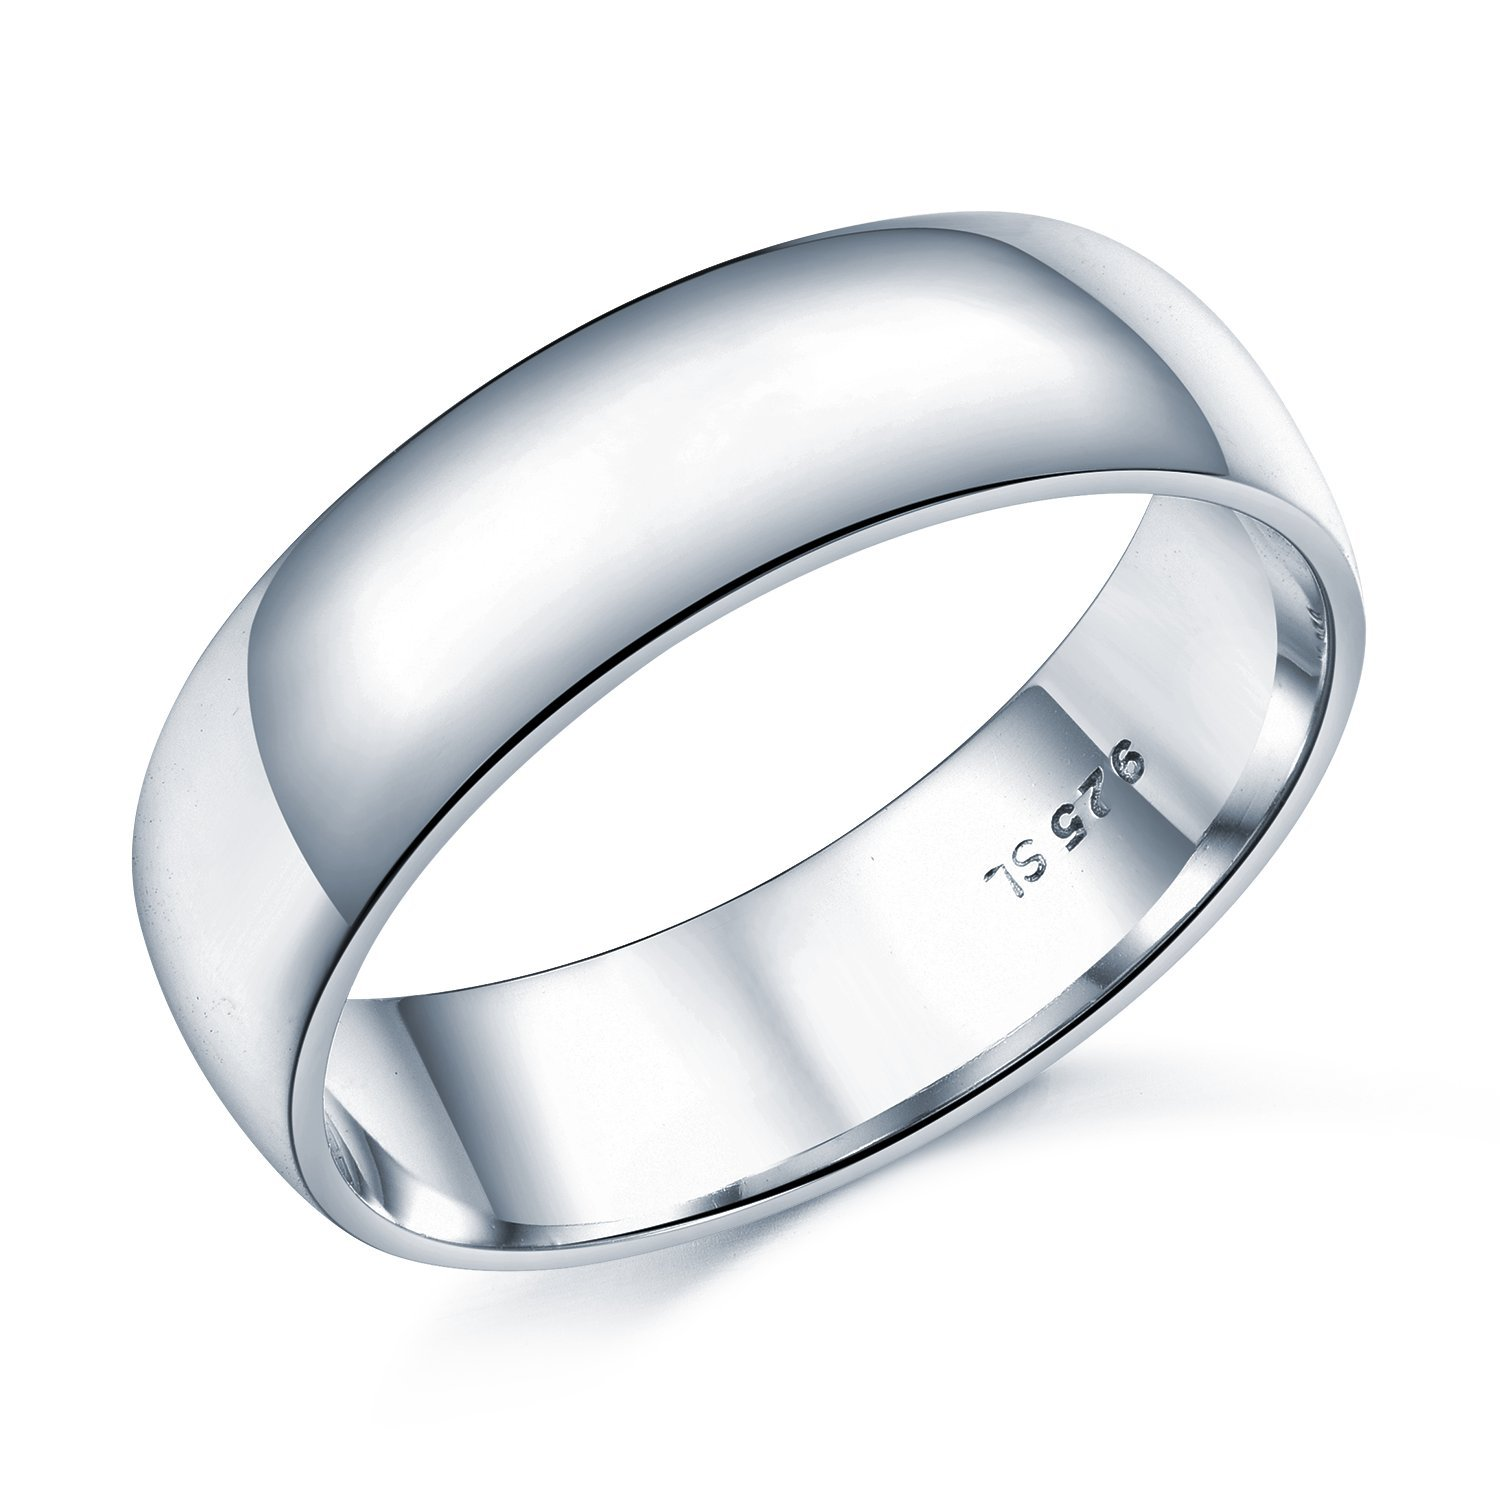 6mm D-Shape Heavy Weight Sterling Silver Wedding Band Ring In Sizes  Complete With Gift Box  Amazon.co.uk  Jewellery 15cc6408eb7c